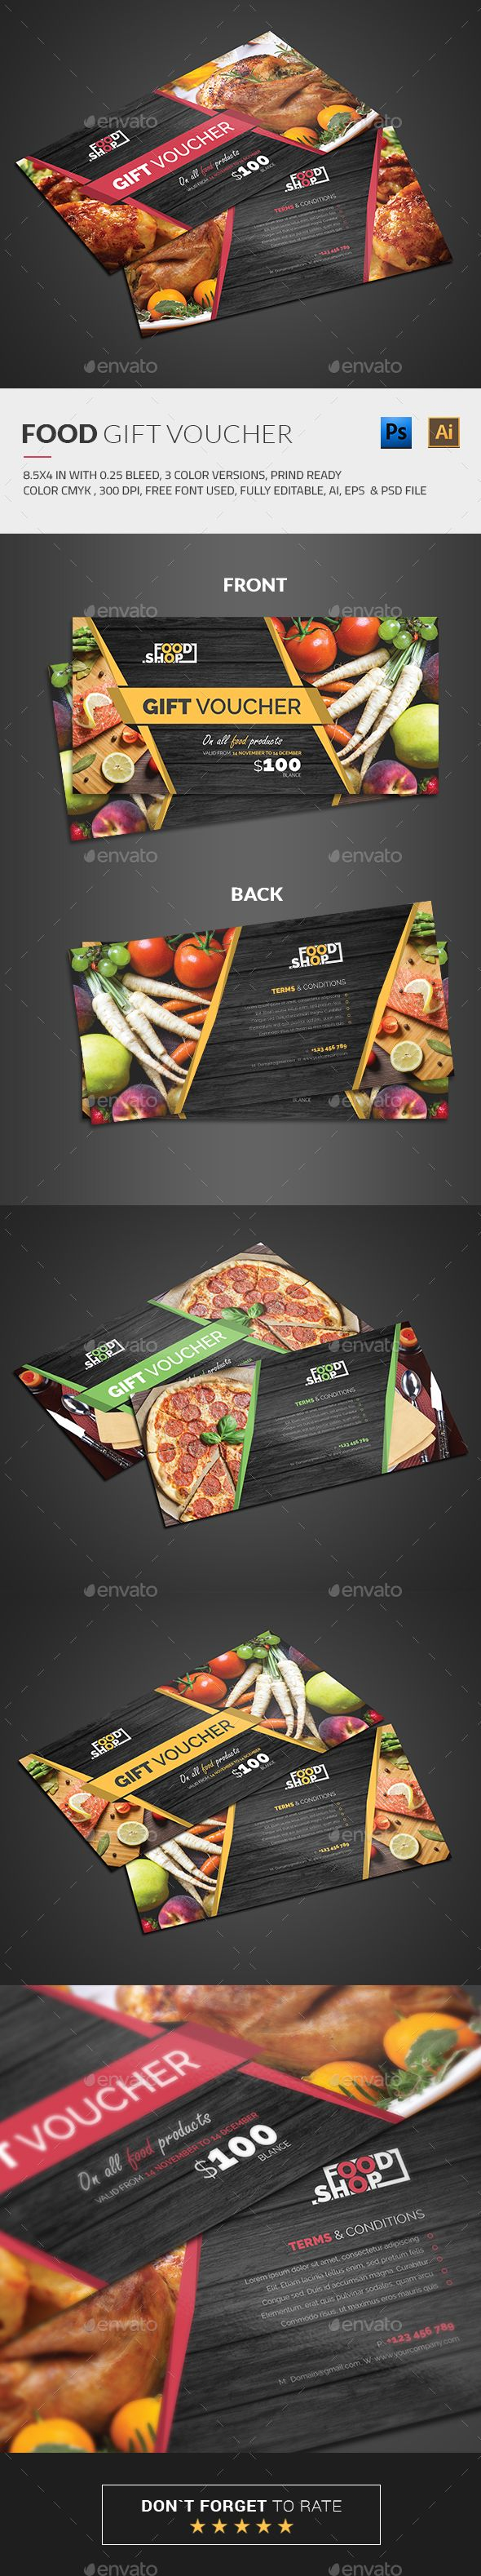 Food Gift Voucher Template PSD, EPS, AI #design Download: http://graphicriver.net/item/food-gift-voucher/13700891?ref=ksioks